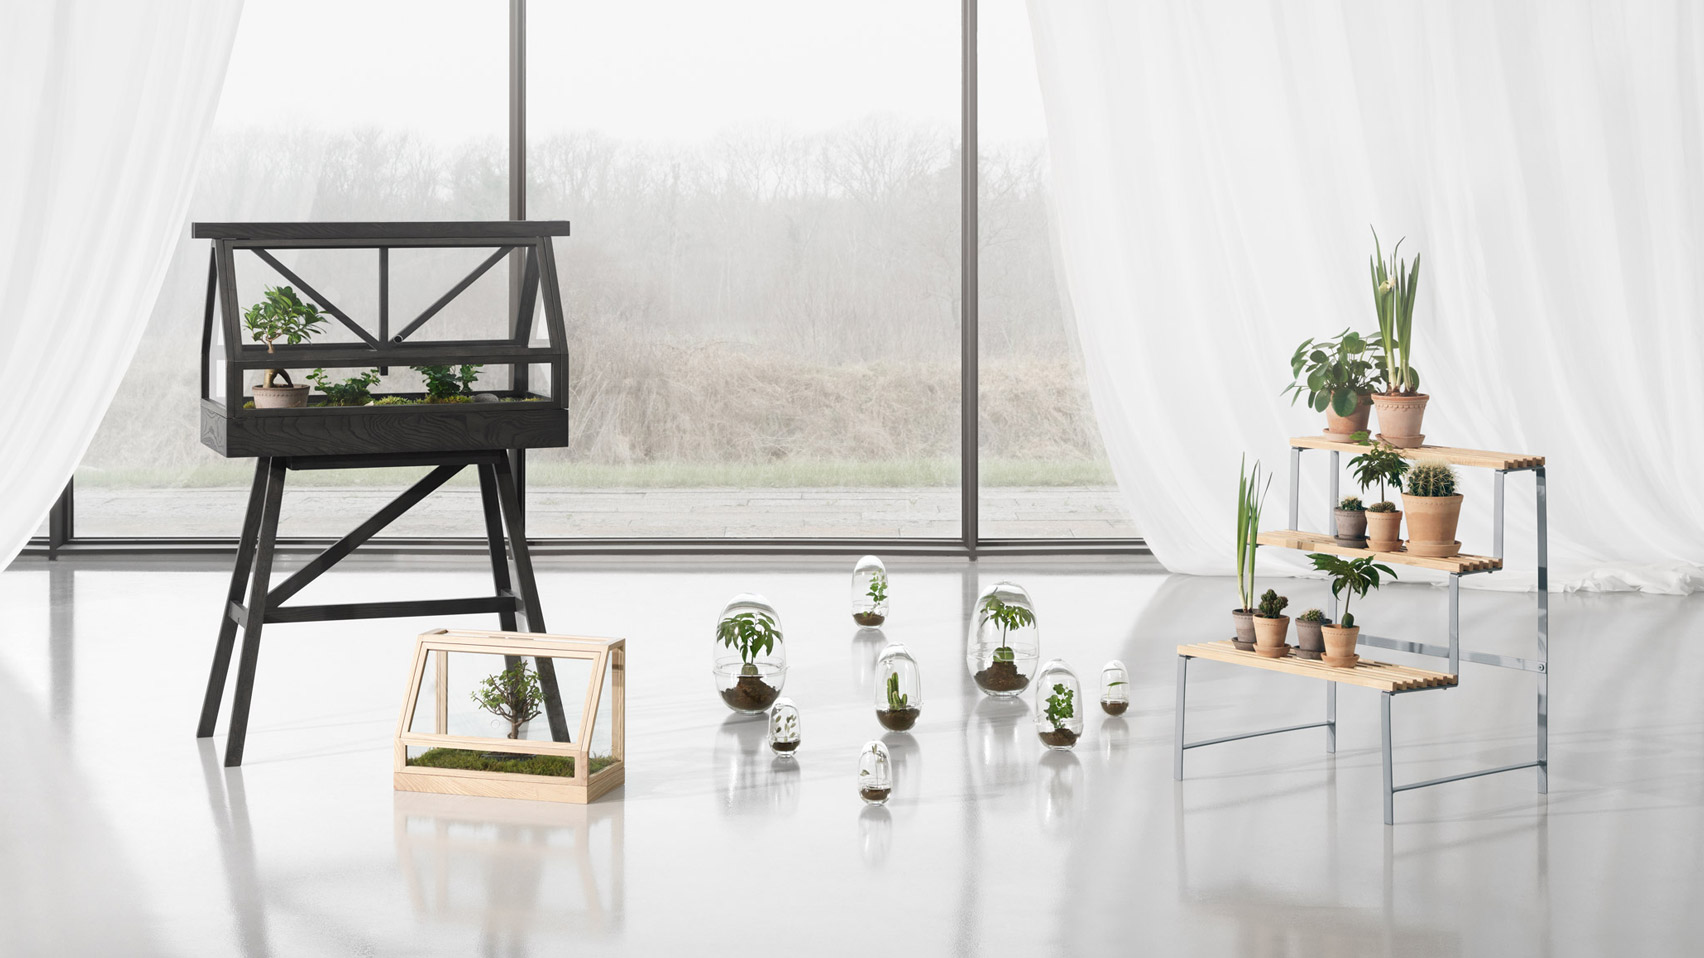 Greenhouse Mini by Atelier 2+ for Design House Stockholm